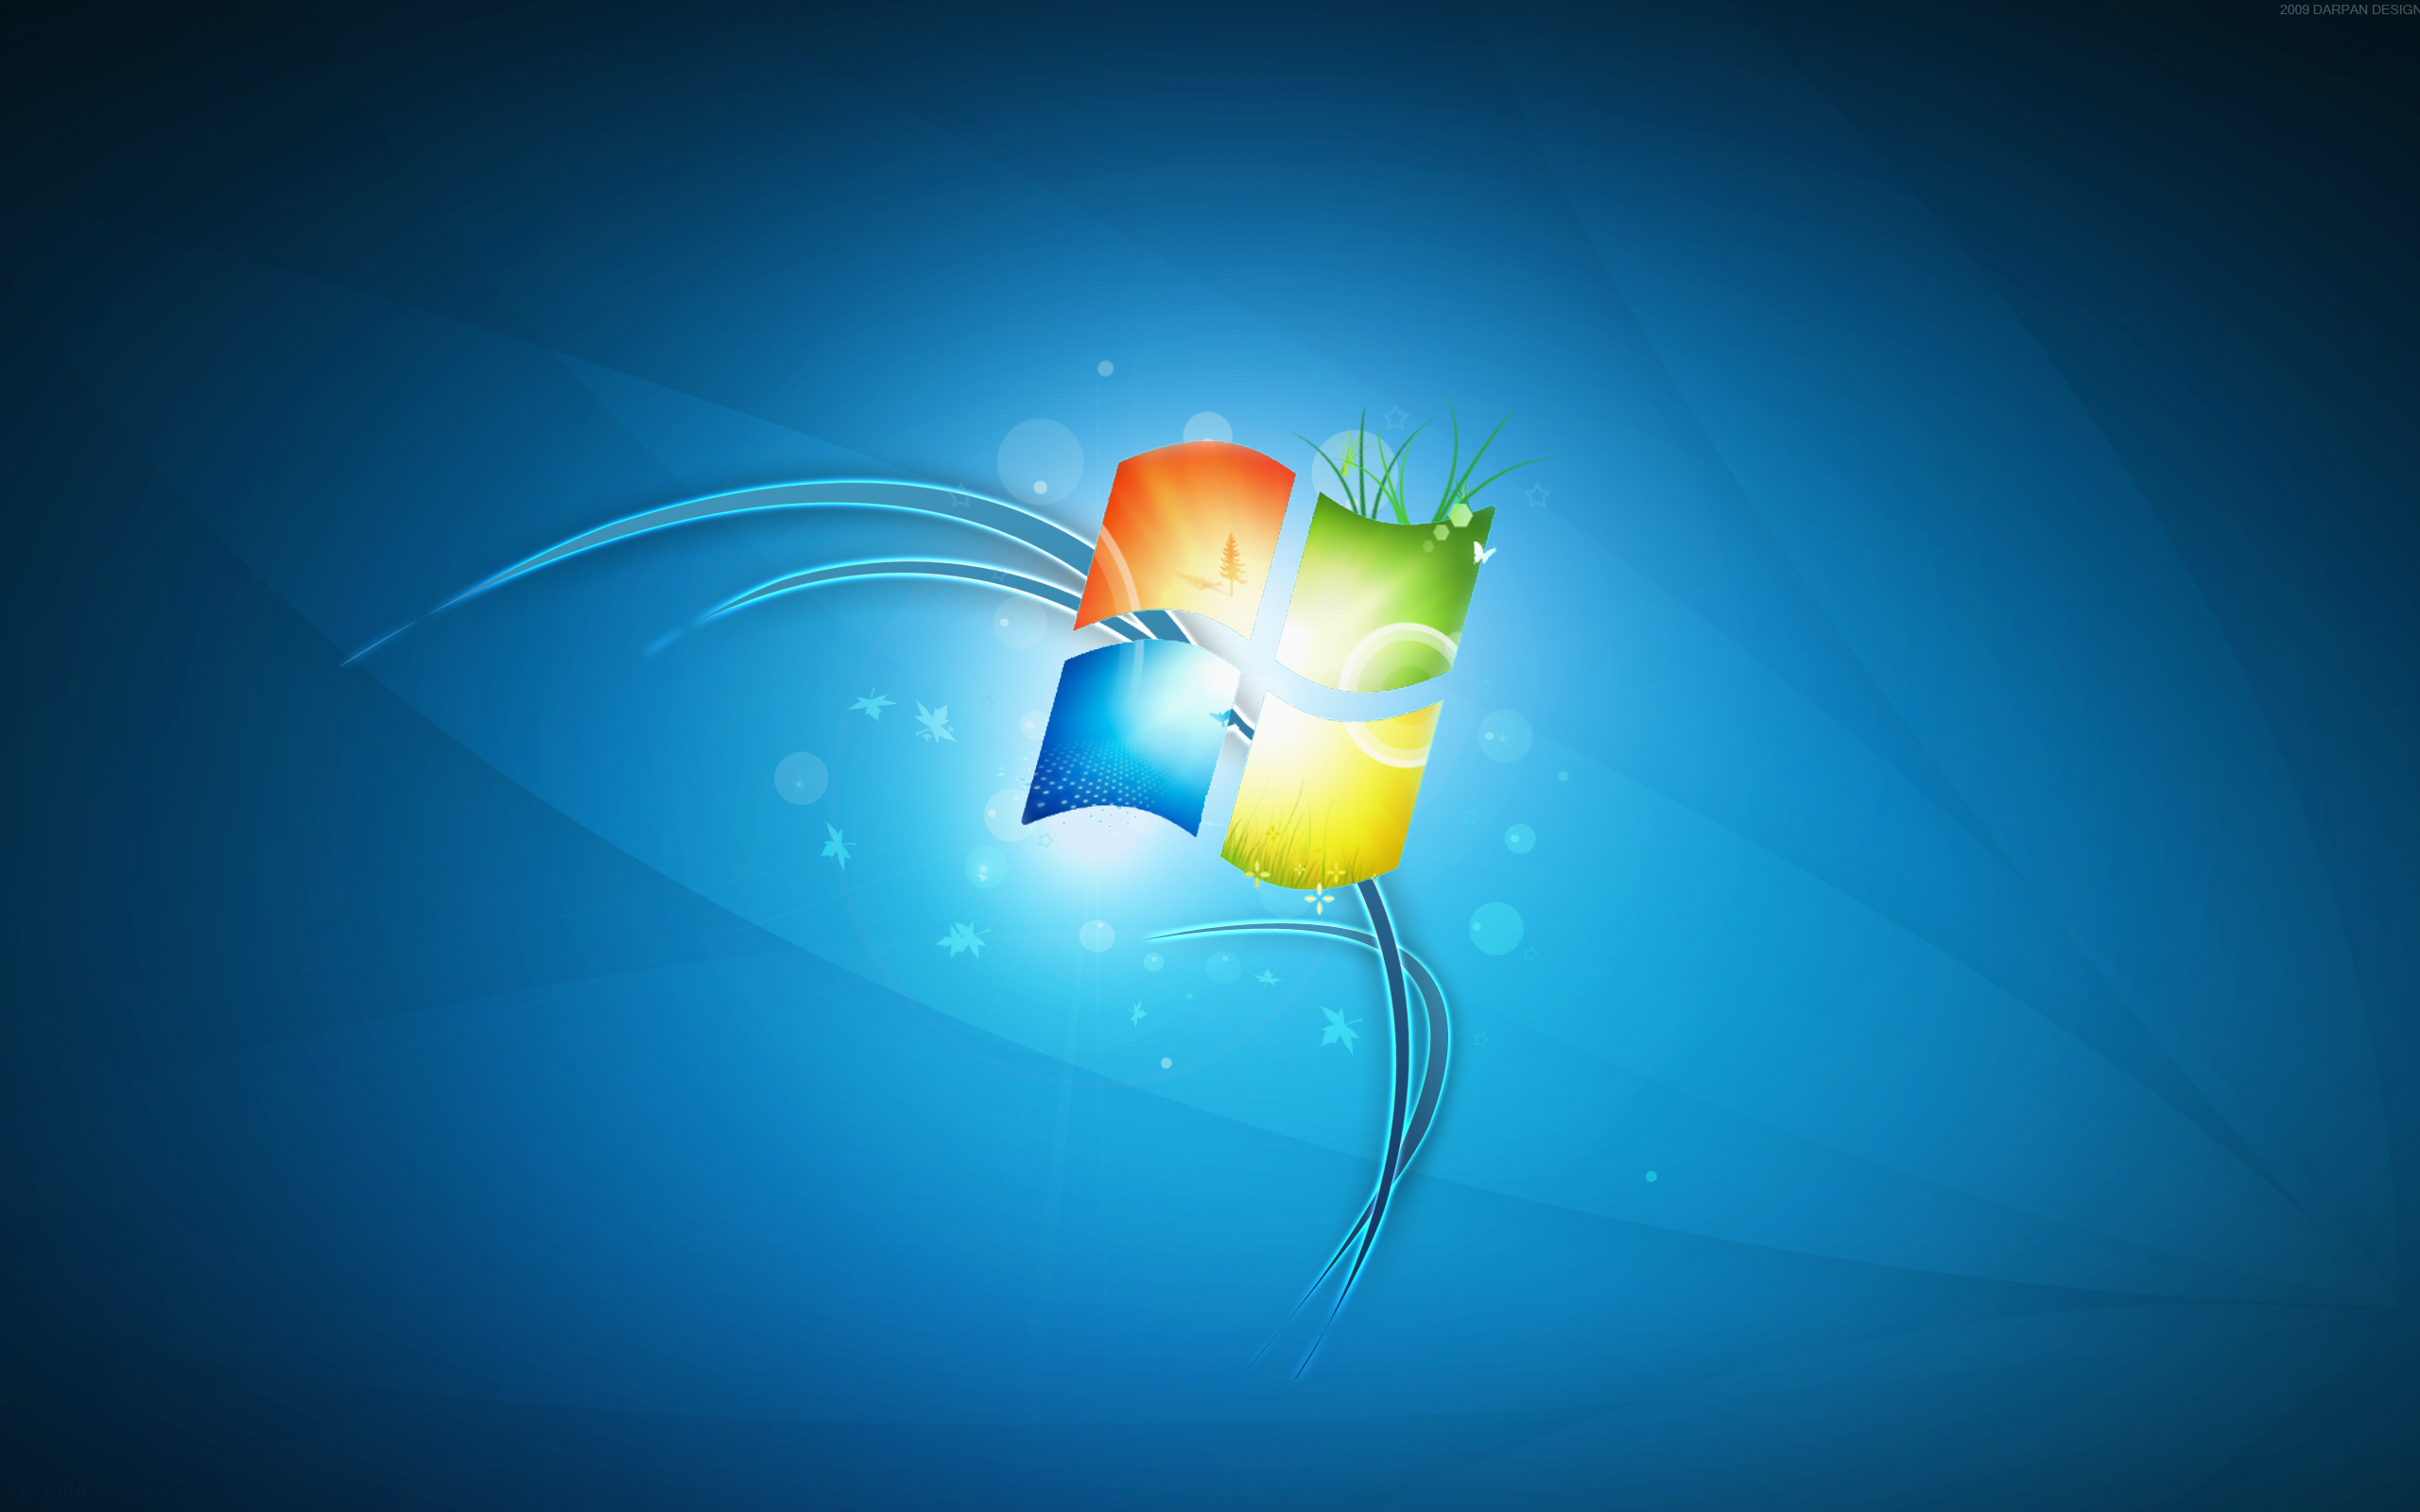 Hd wallpaper windows 7 - Wallpaper For Windowns 7